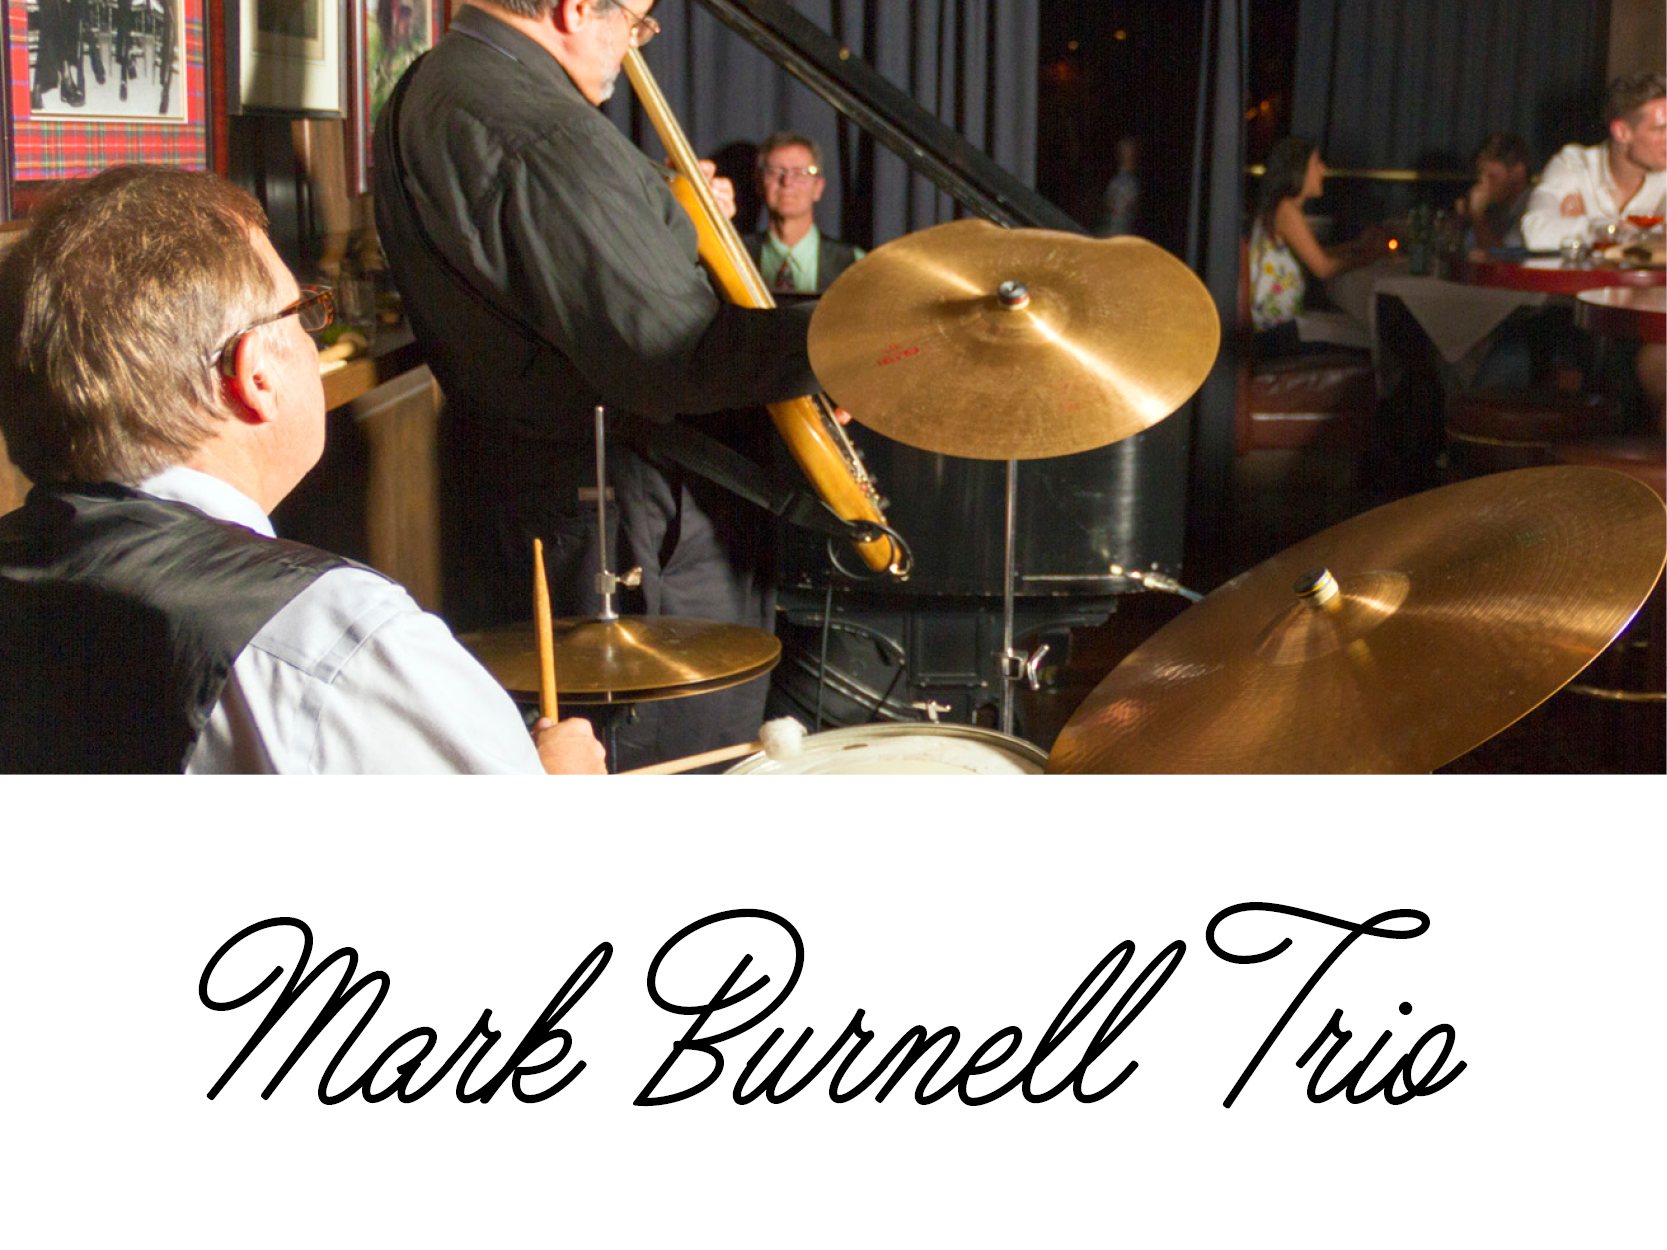 Sinatra Style Jazz - Mark Burnell Trio.png